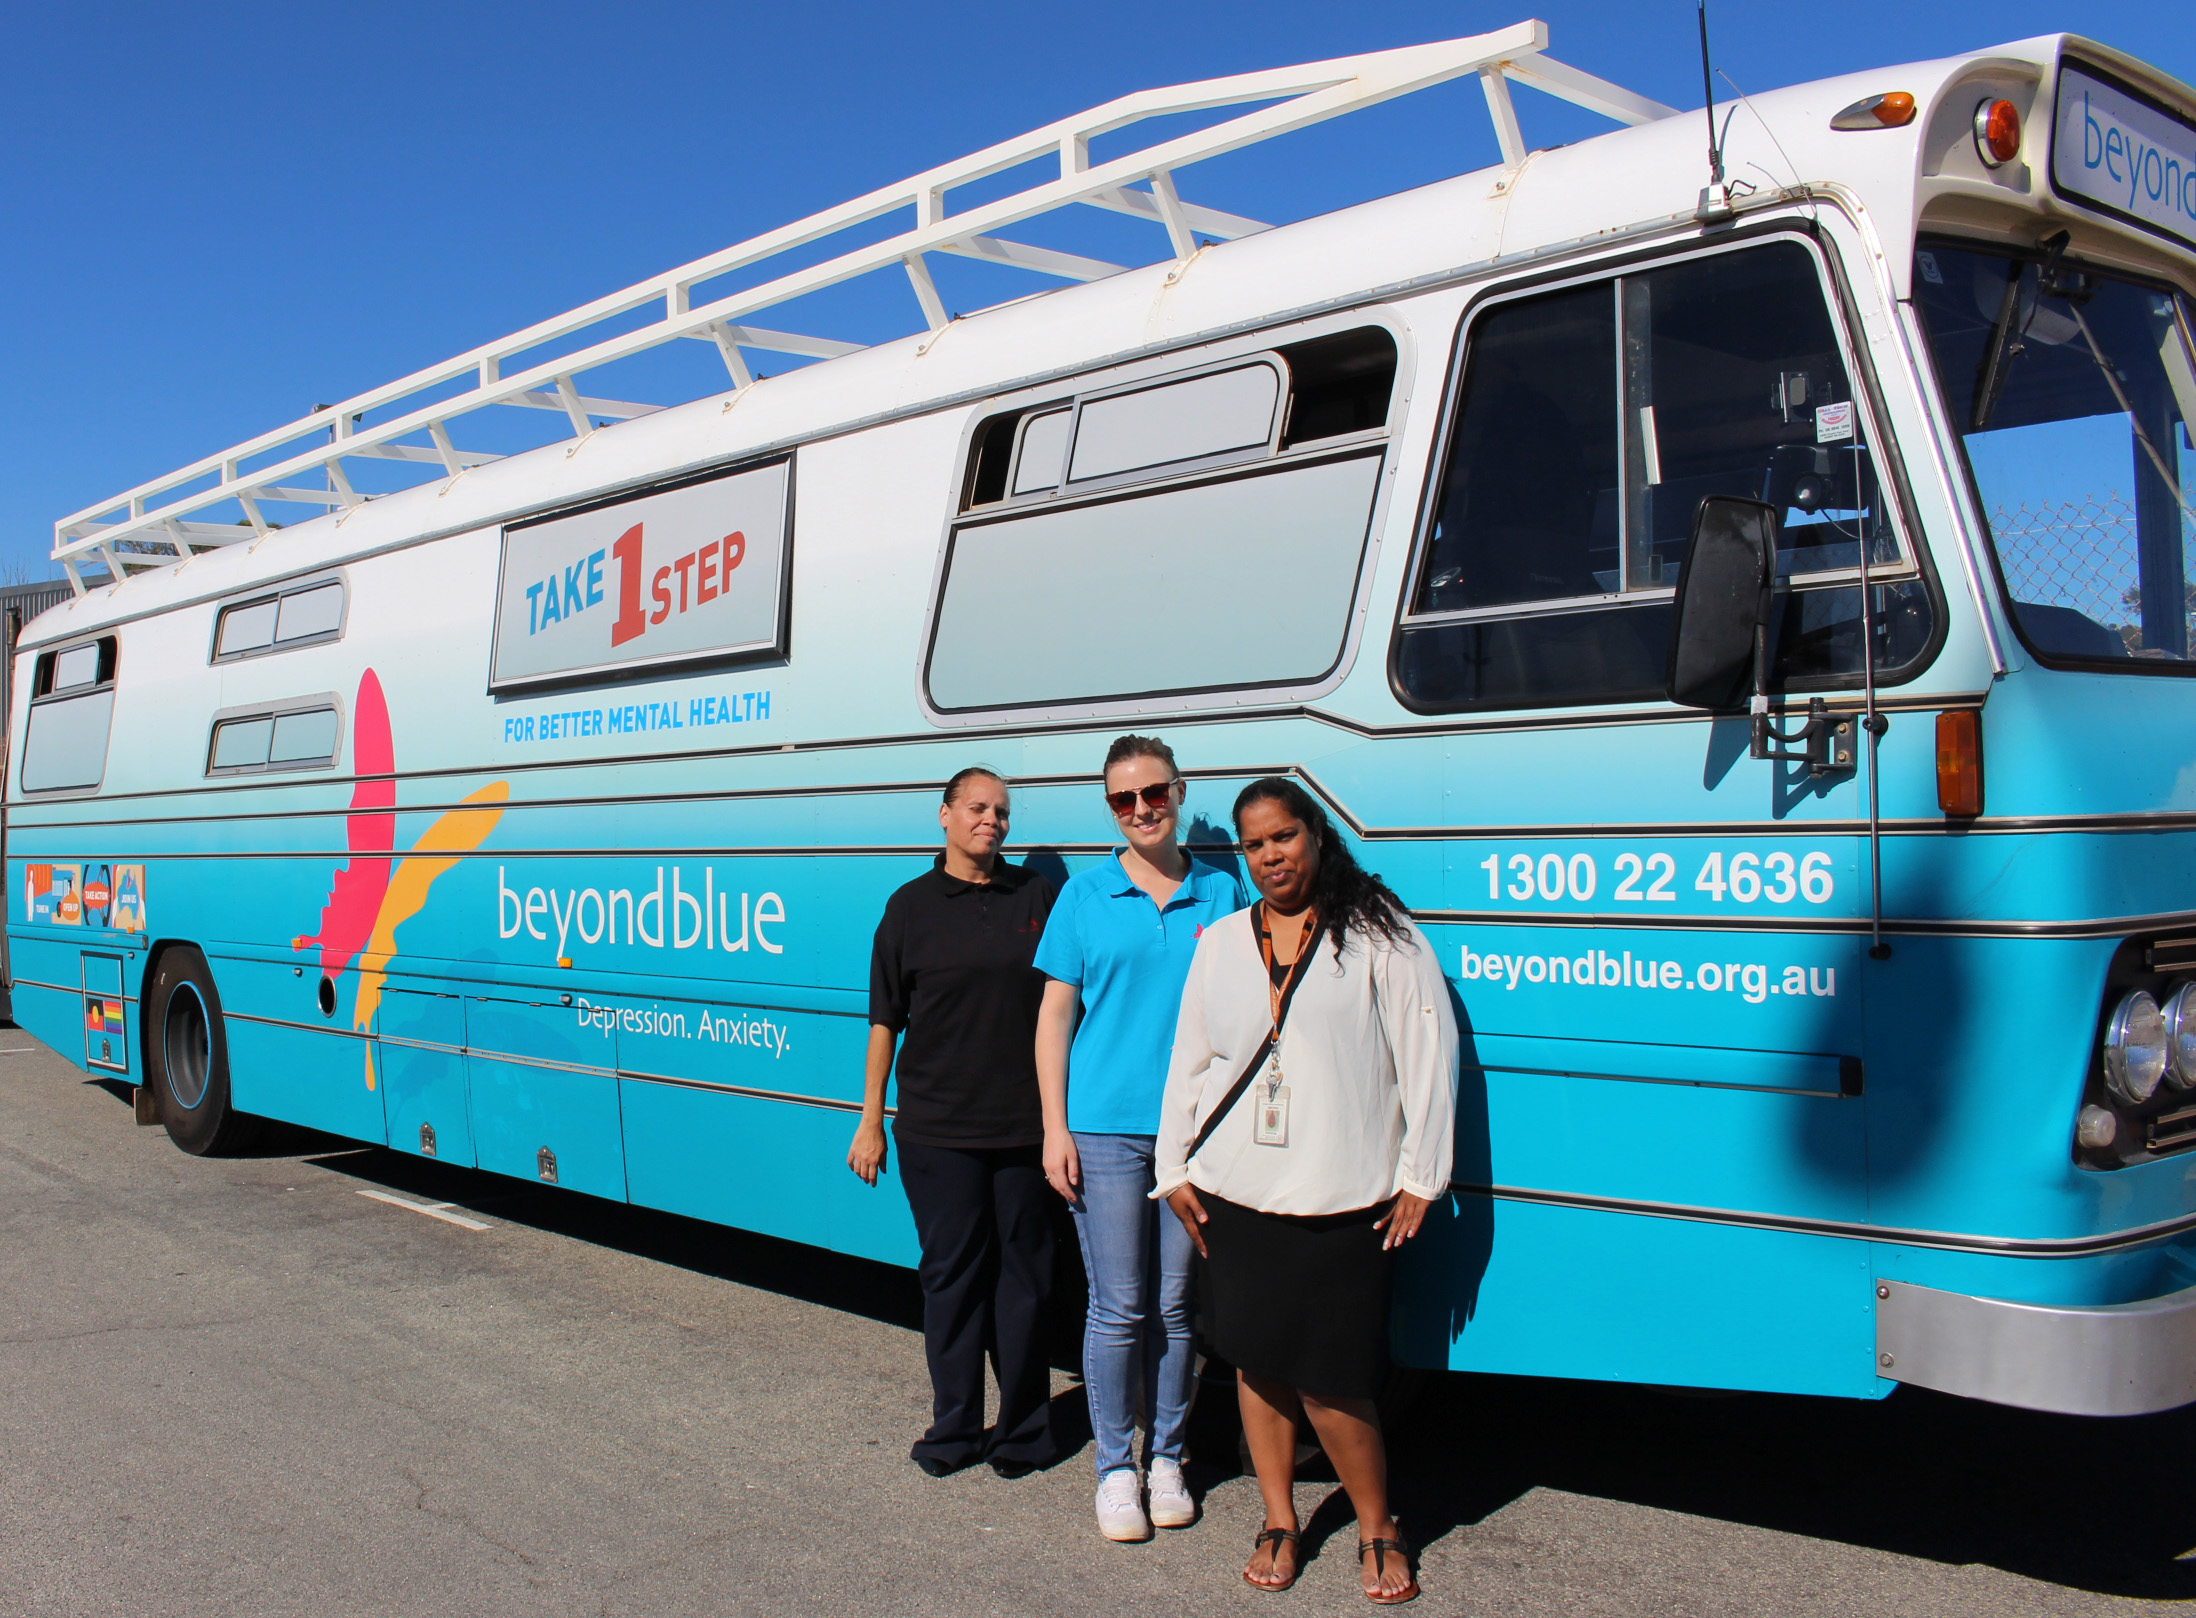 In Geraldton for the Deadly Divaz wellbeing day.